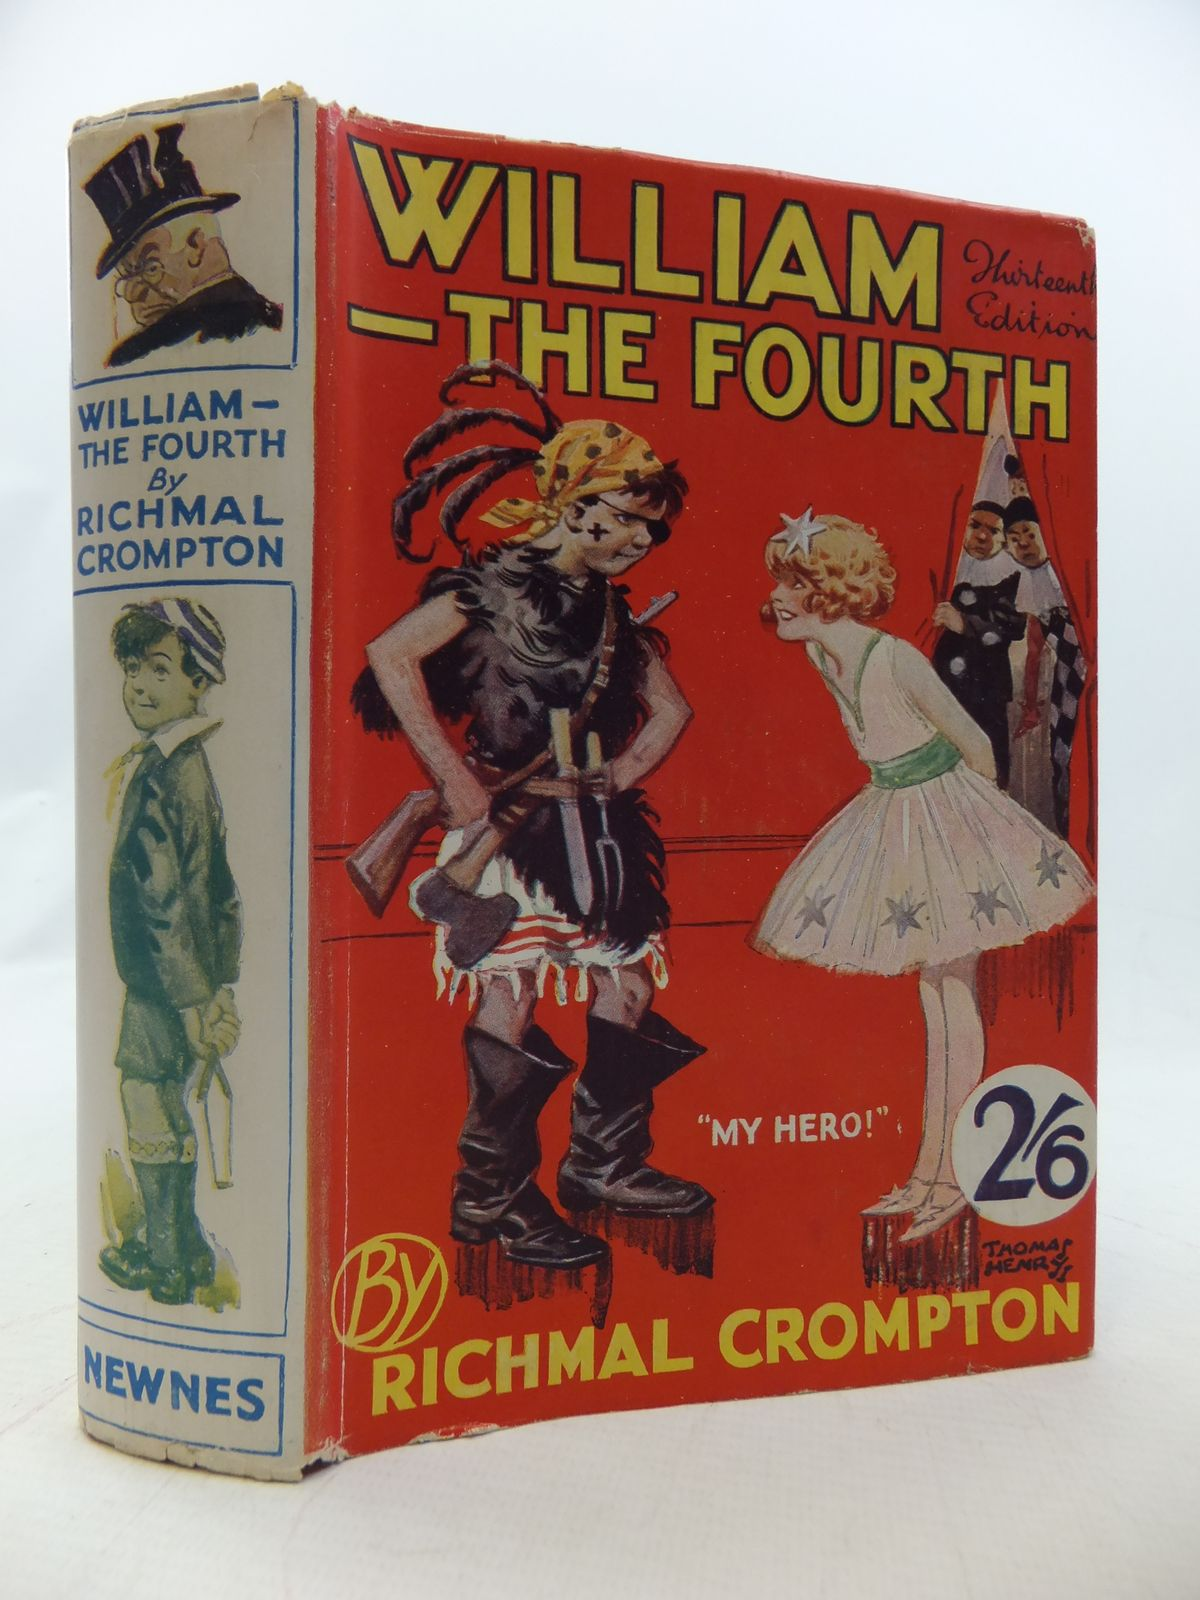 Cover of WILLIAM THE FOURTH by Richmal Crompton